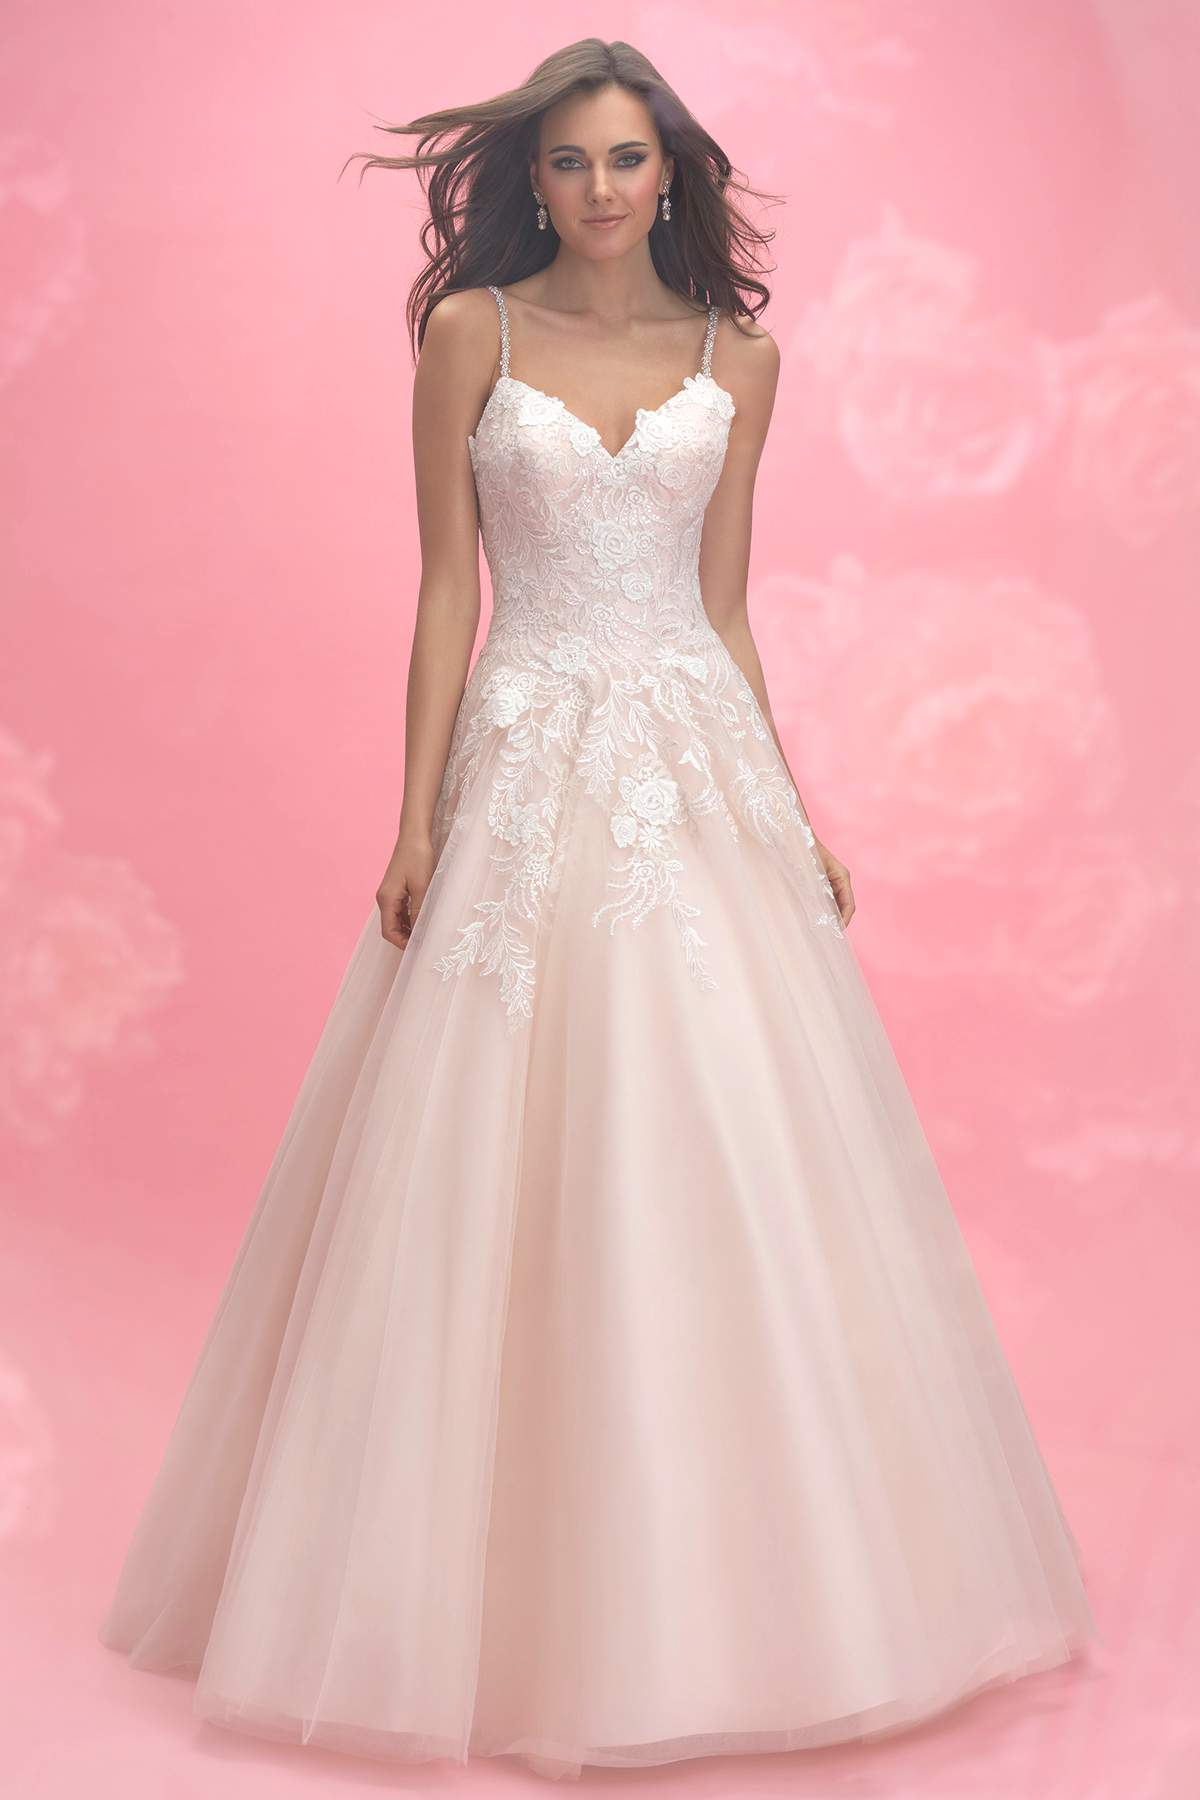 Style 3053 by Allure Romance - Find Your Dream Dress